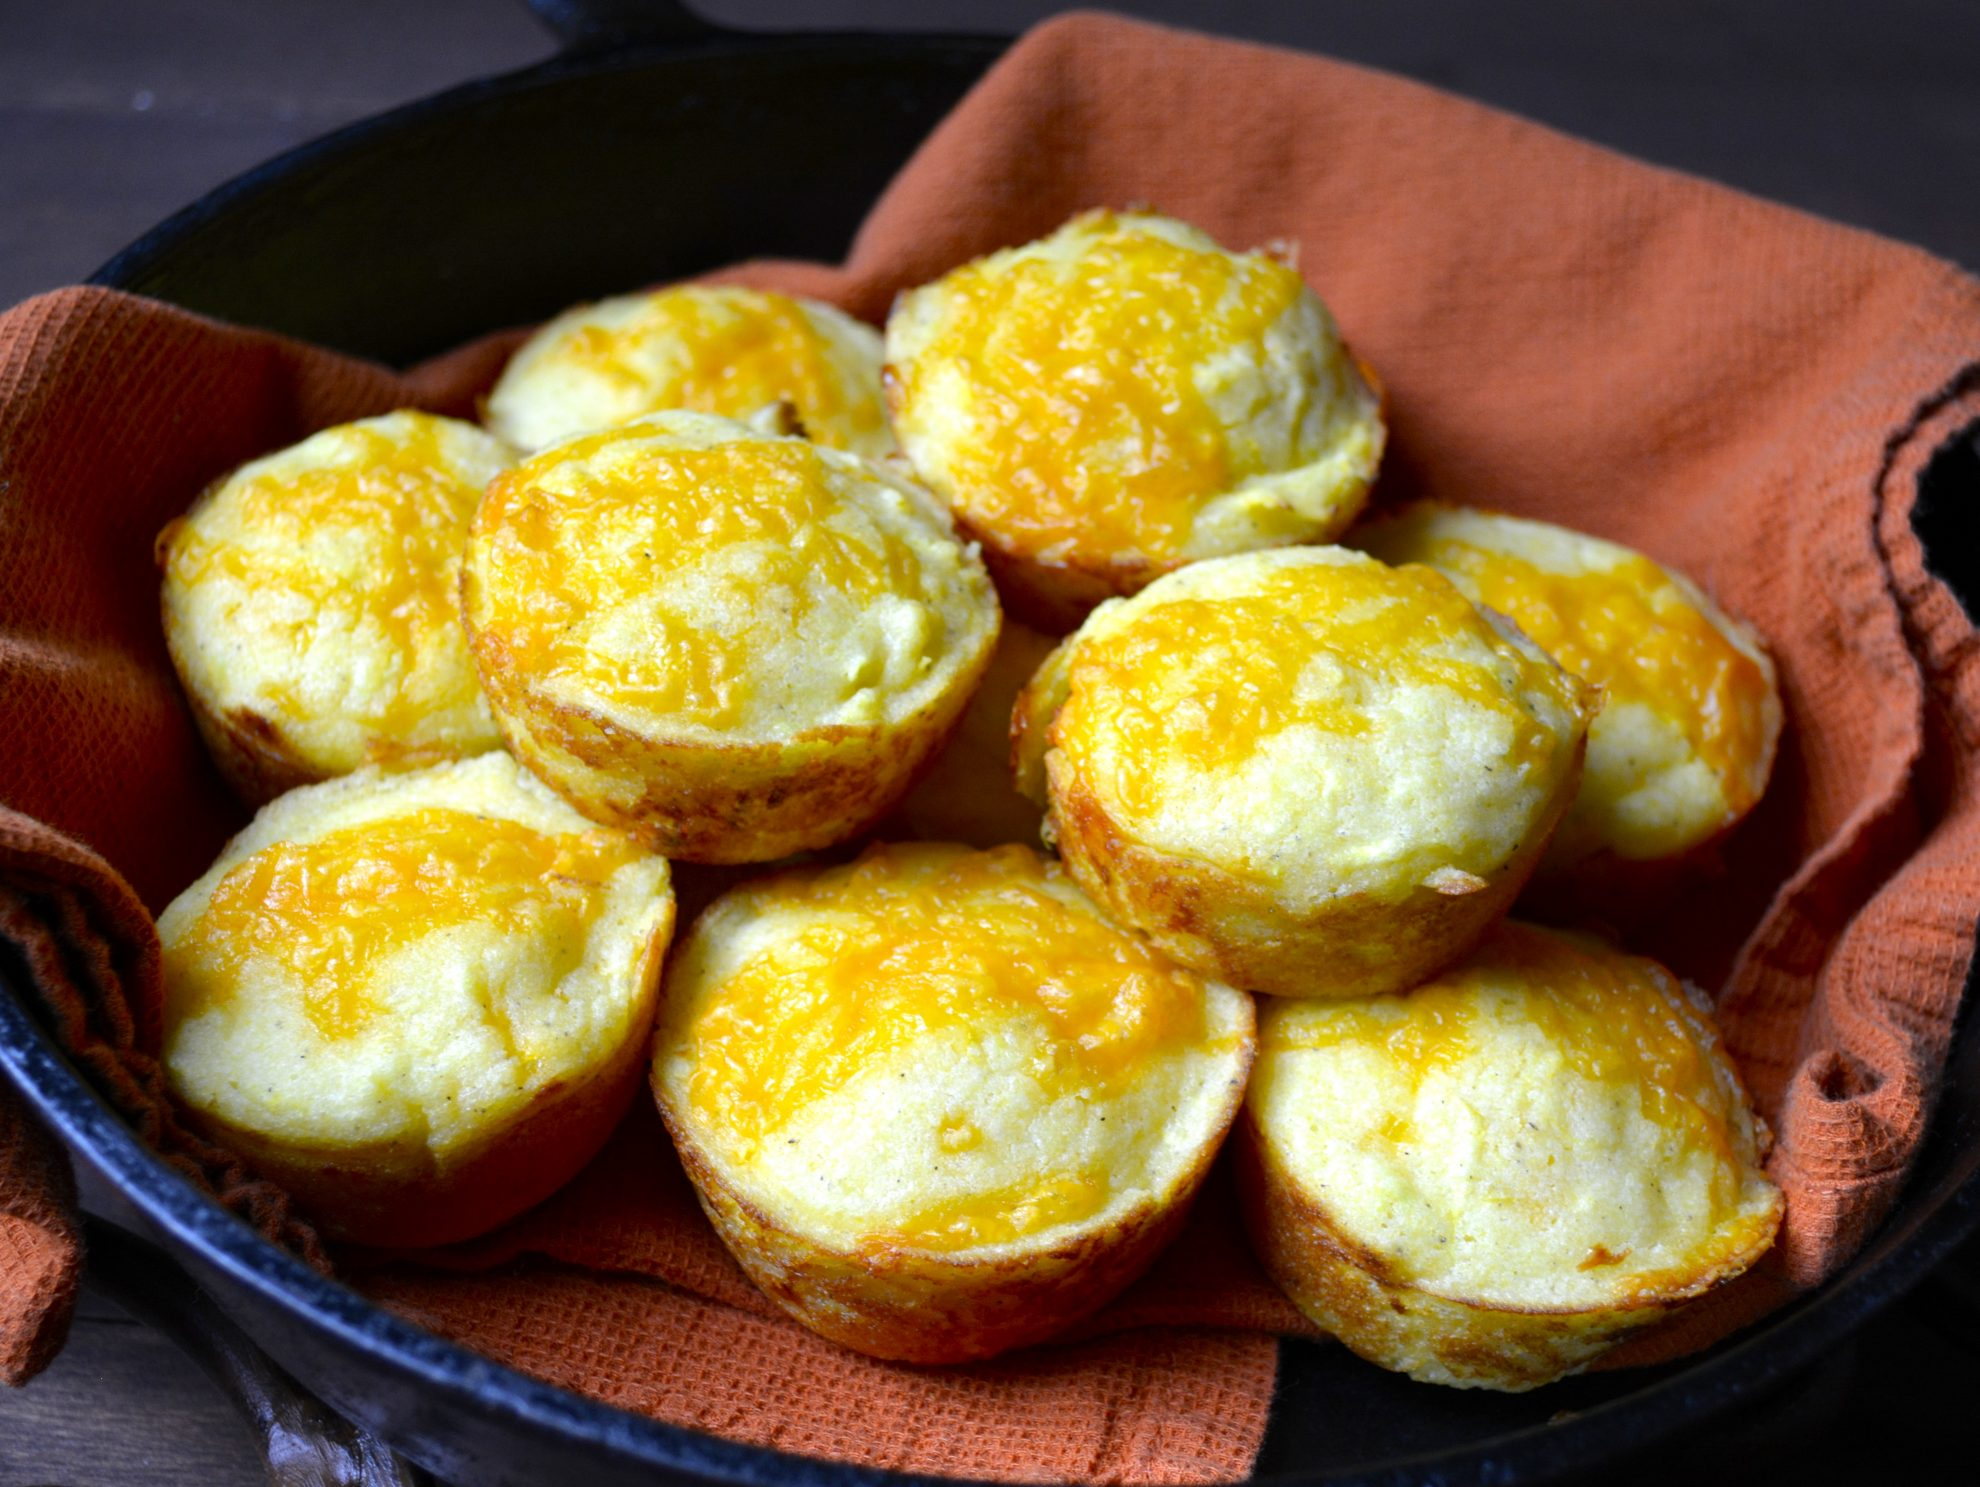 Cheddar and Summer Squash Cornmeal Muffins